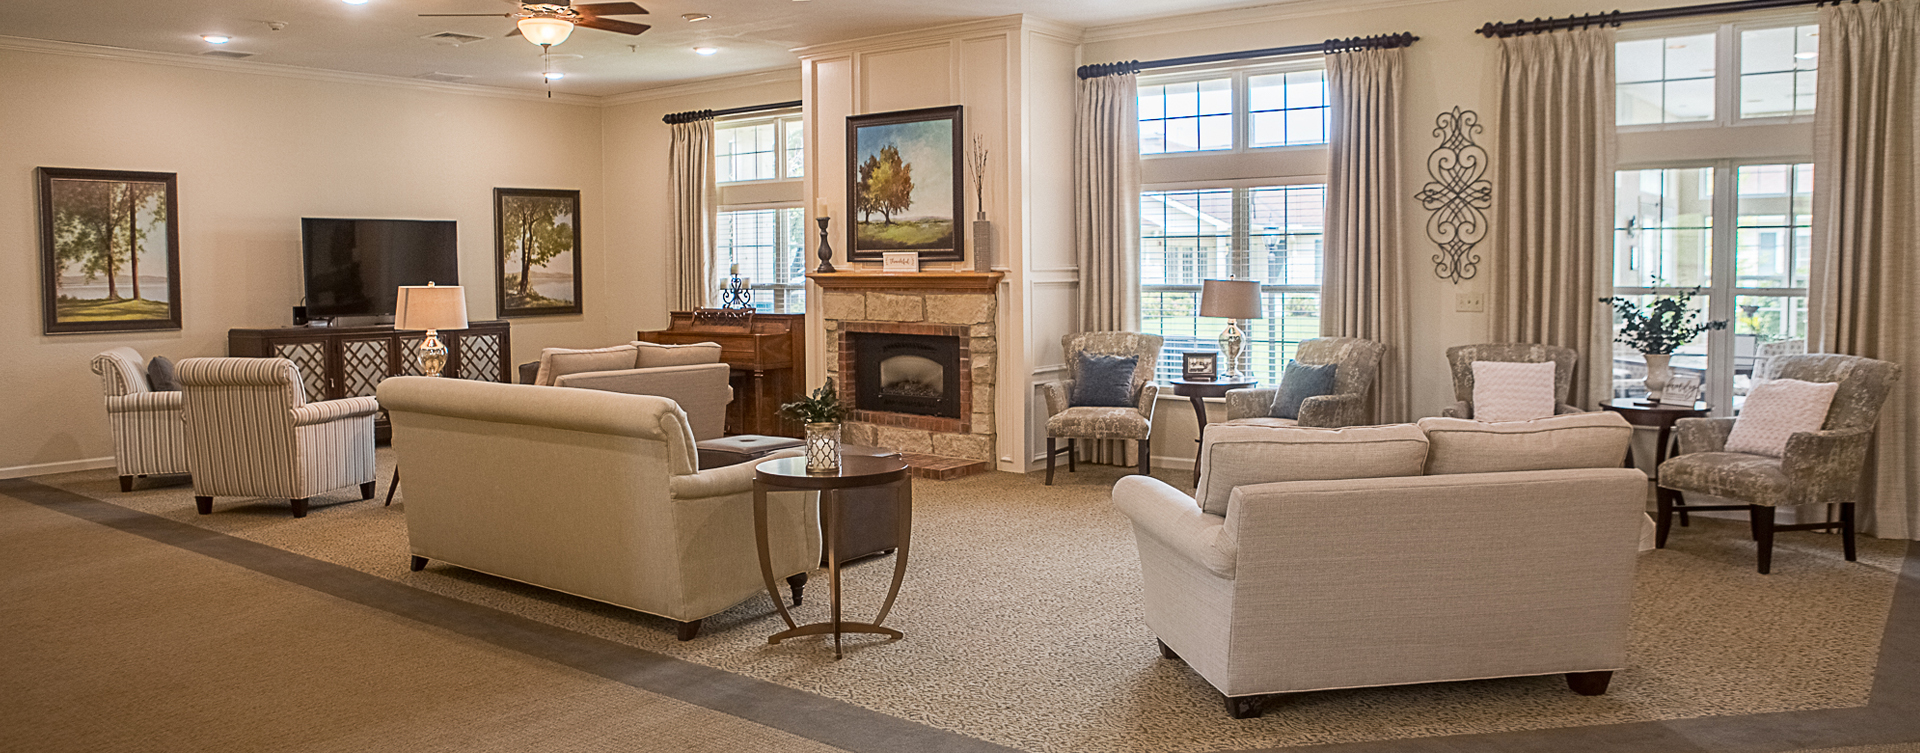 Socialize with friends in the living room at Bickford of Clinton